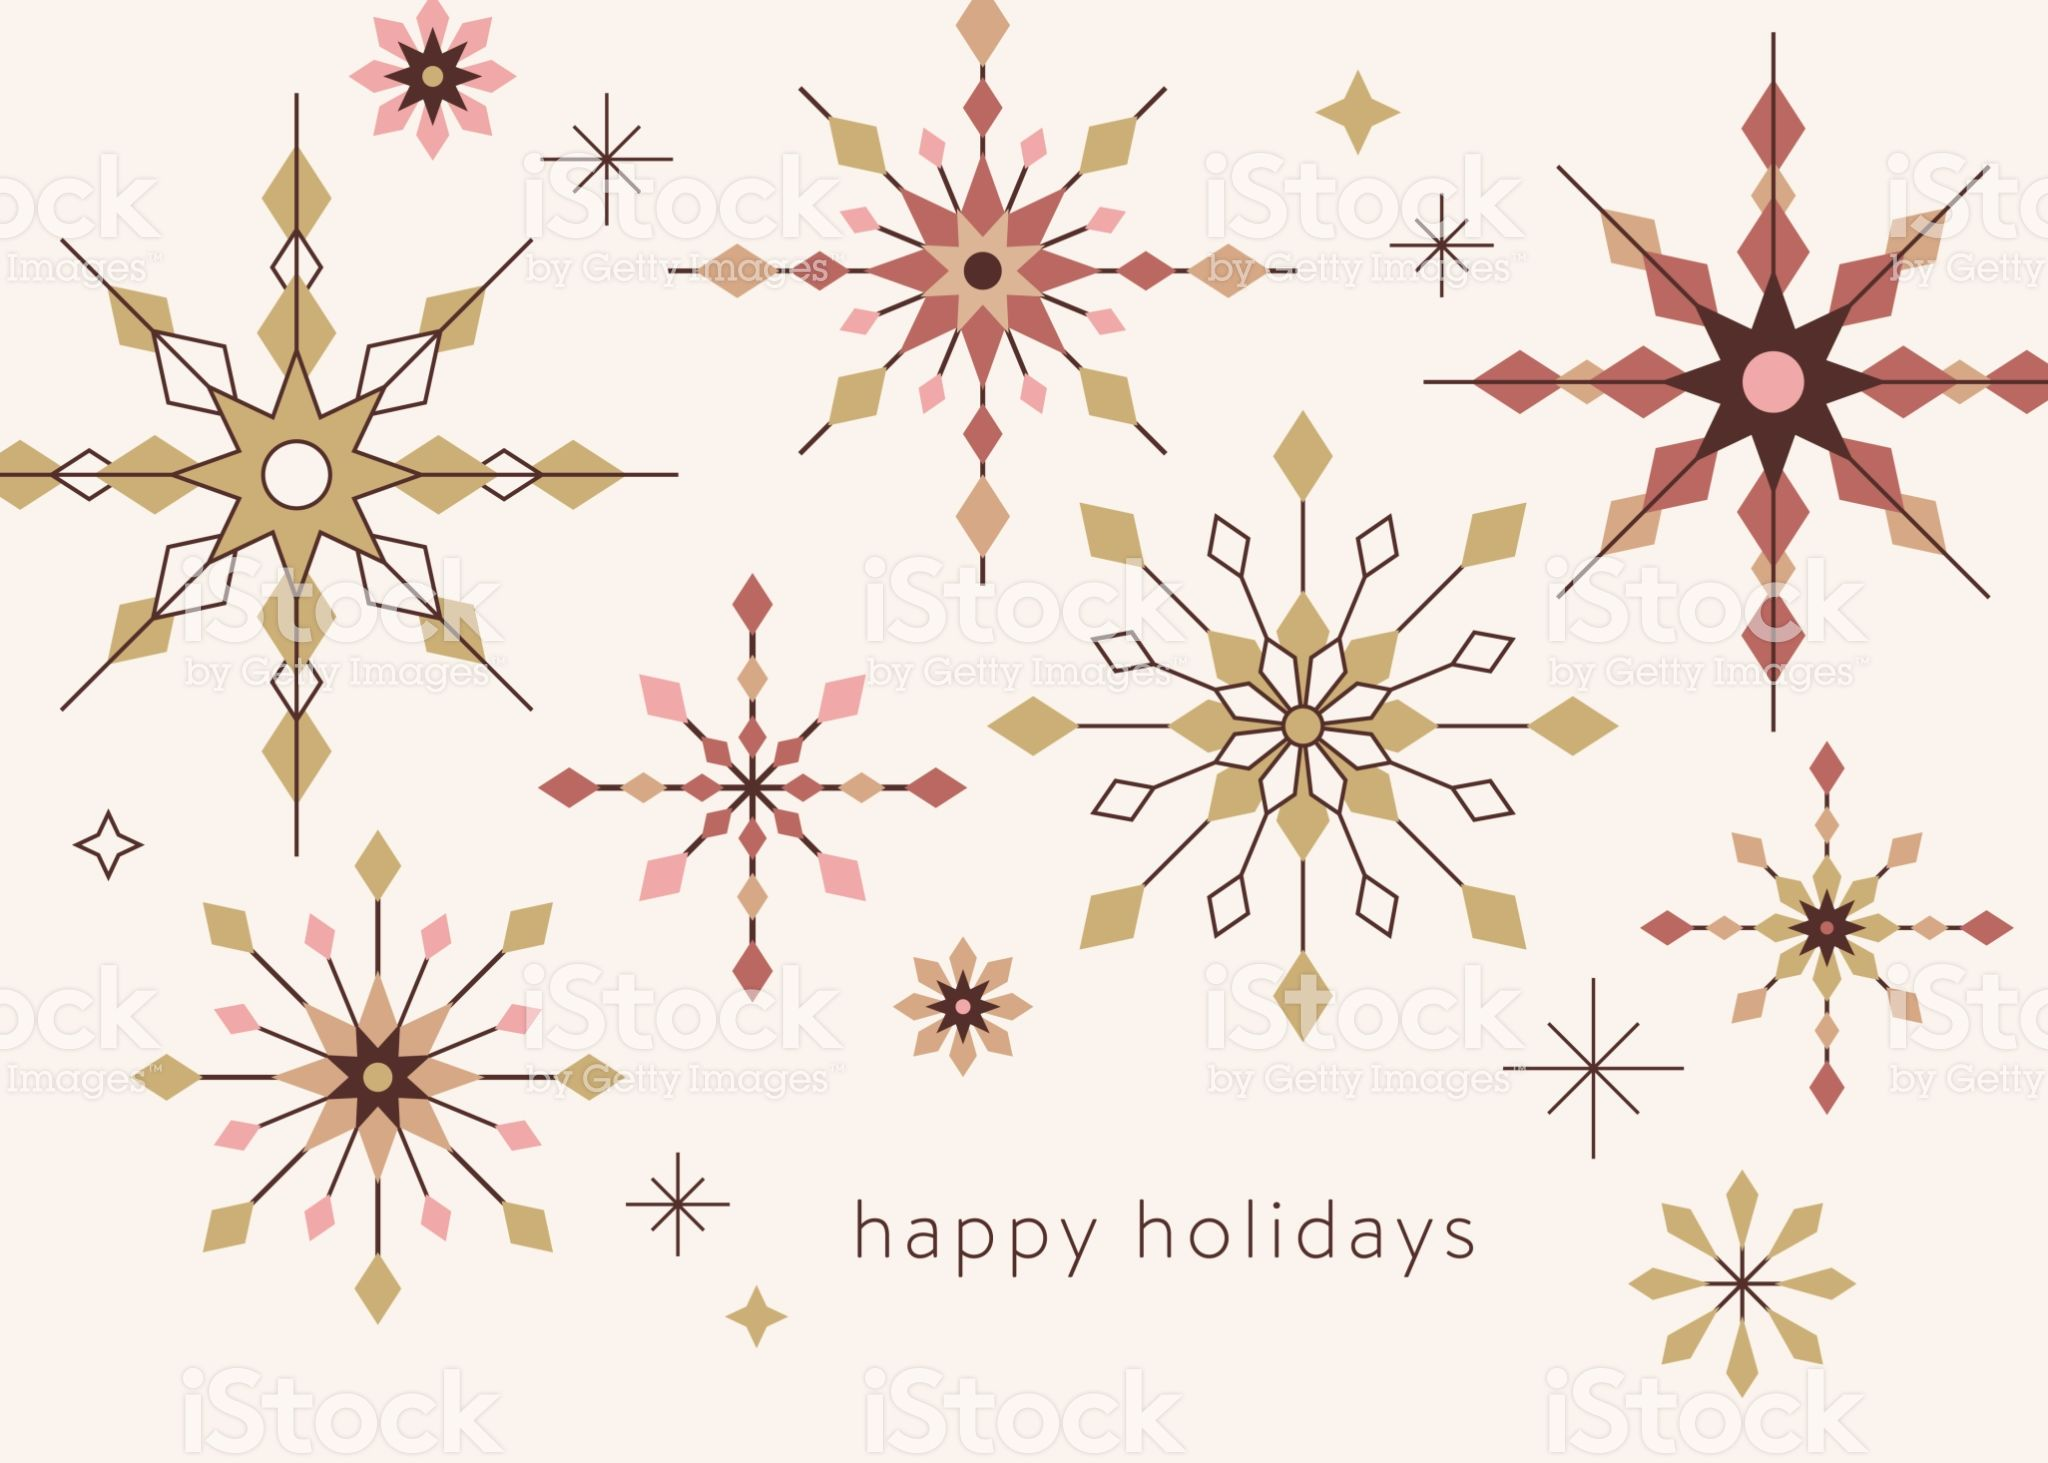 Geometric Snowflakes Background With Greetings Christmas